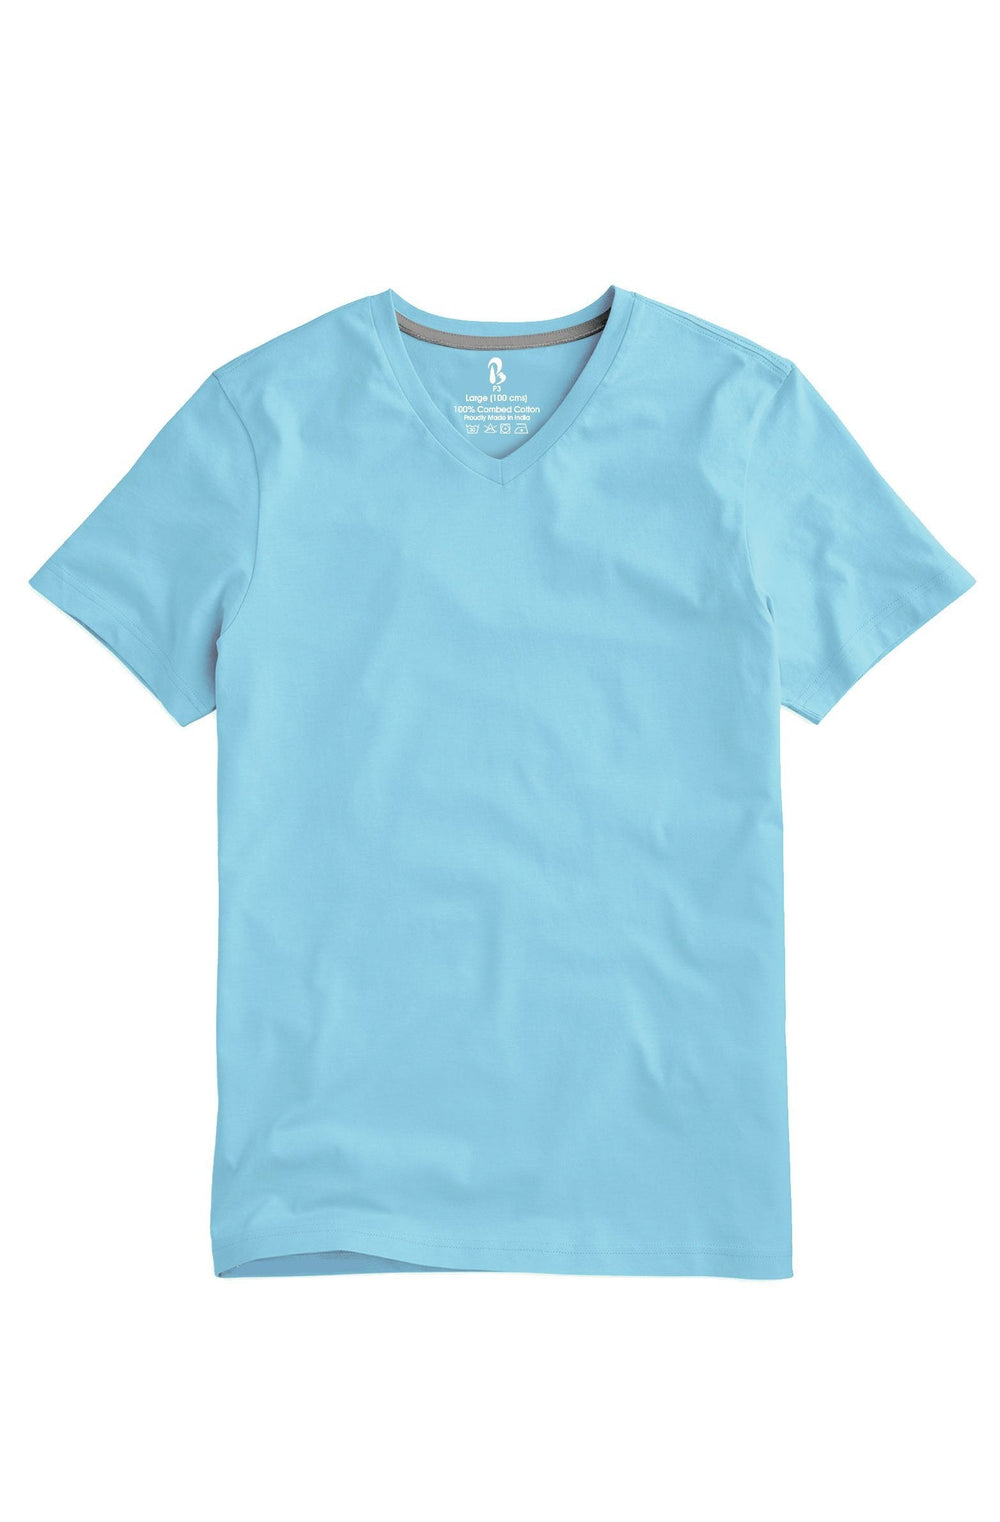 Soft Sky V-Neck Tee (MRP inclusive of all taxes) V Neck T-Shirt P3